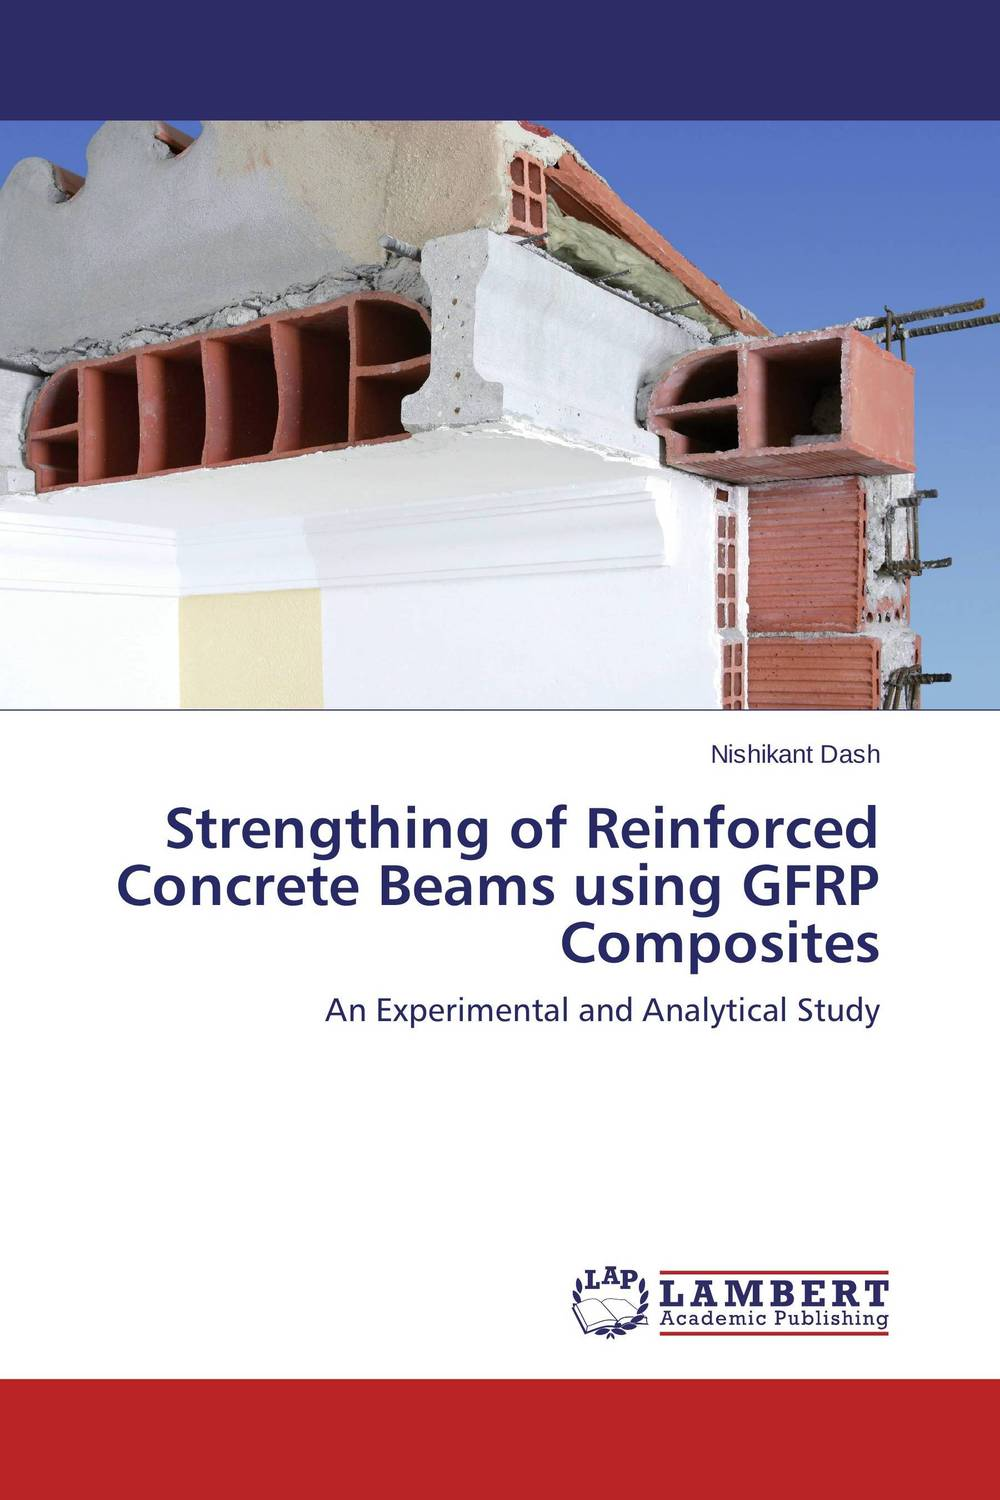 Strengthing of Reinforced Concrete Beams using GFRP Composites